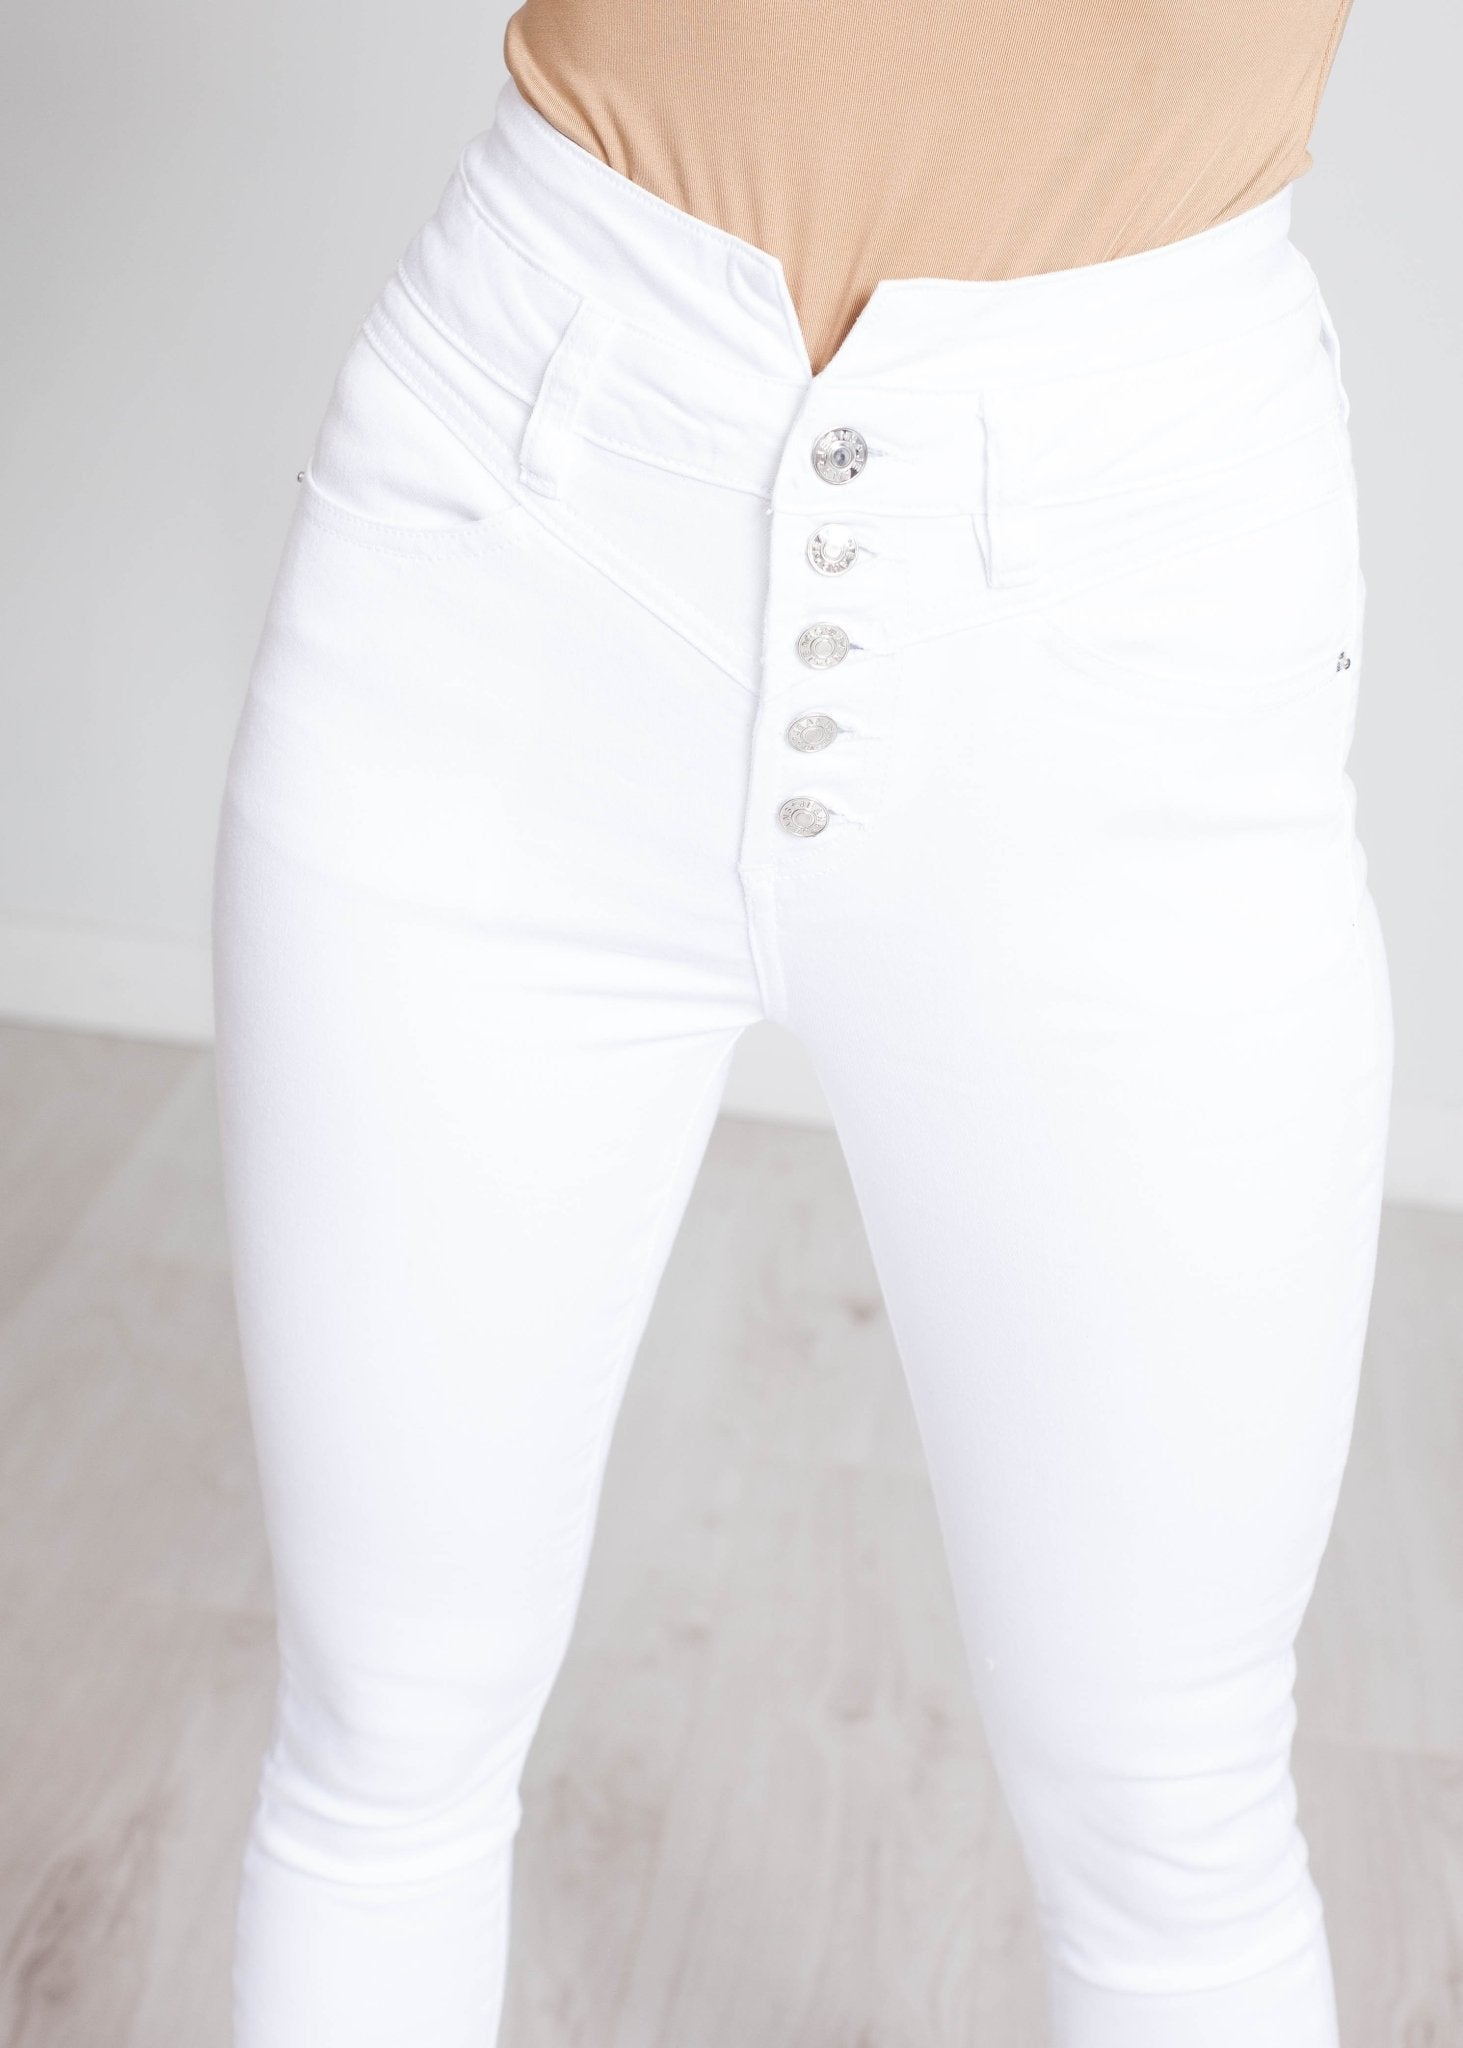 Melanie High Waist Skinny Jean In White - The Walk in Wardrobe